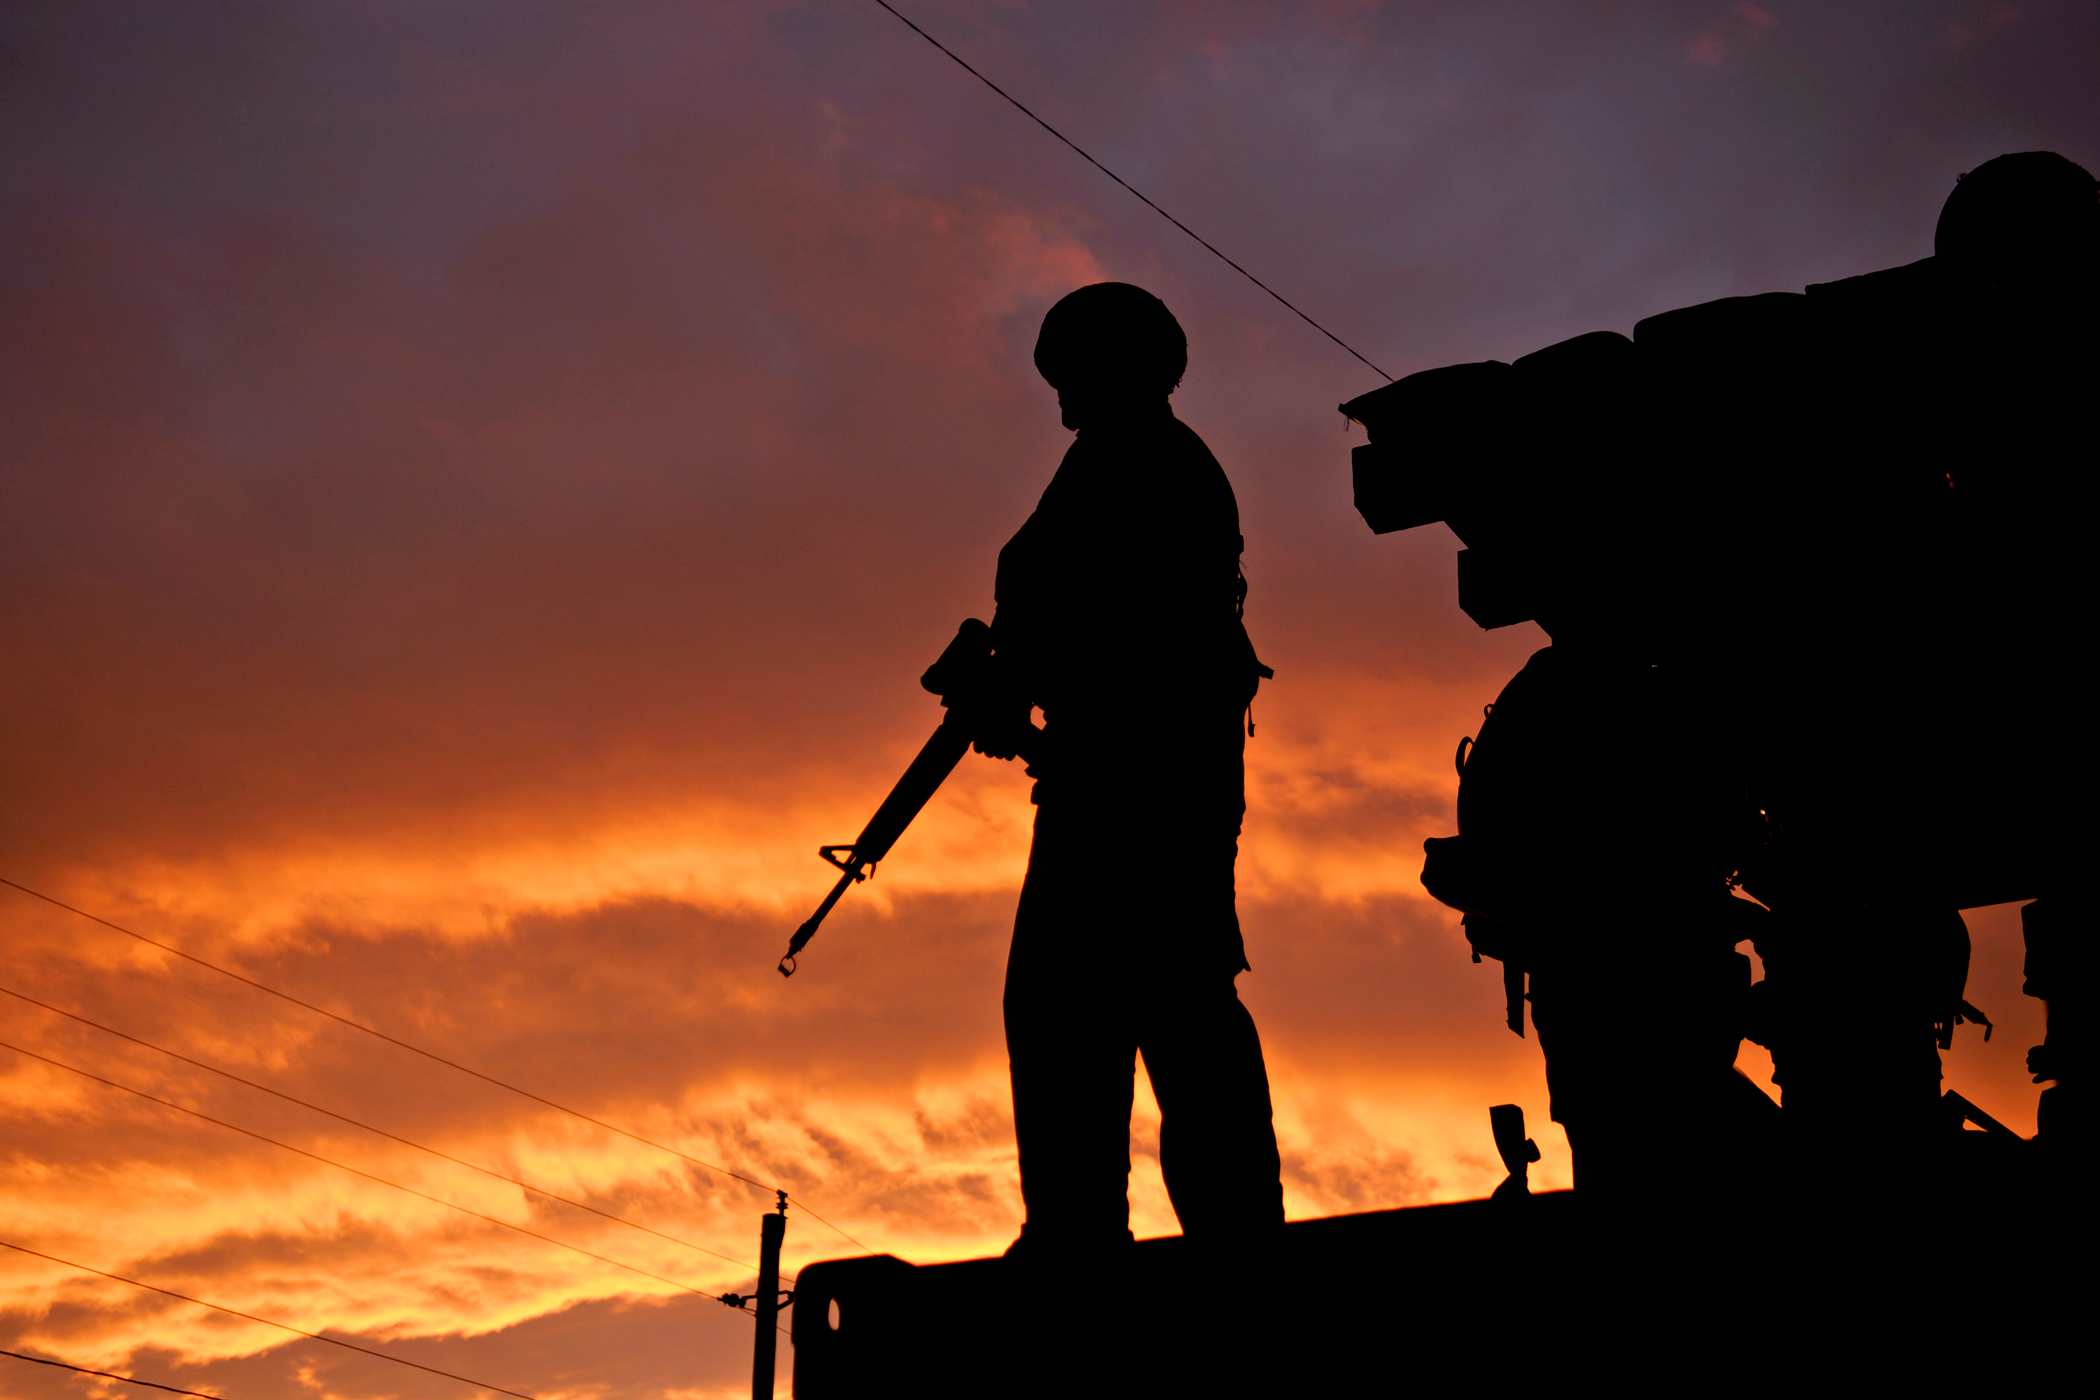 canadian armed forces dating site ---never send money or anything to anyone you have only met online such as social media and dating sites and never met in person as in real life.